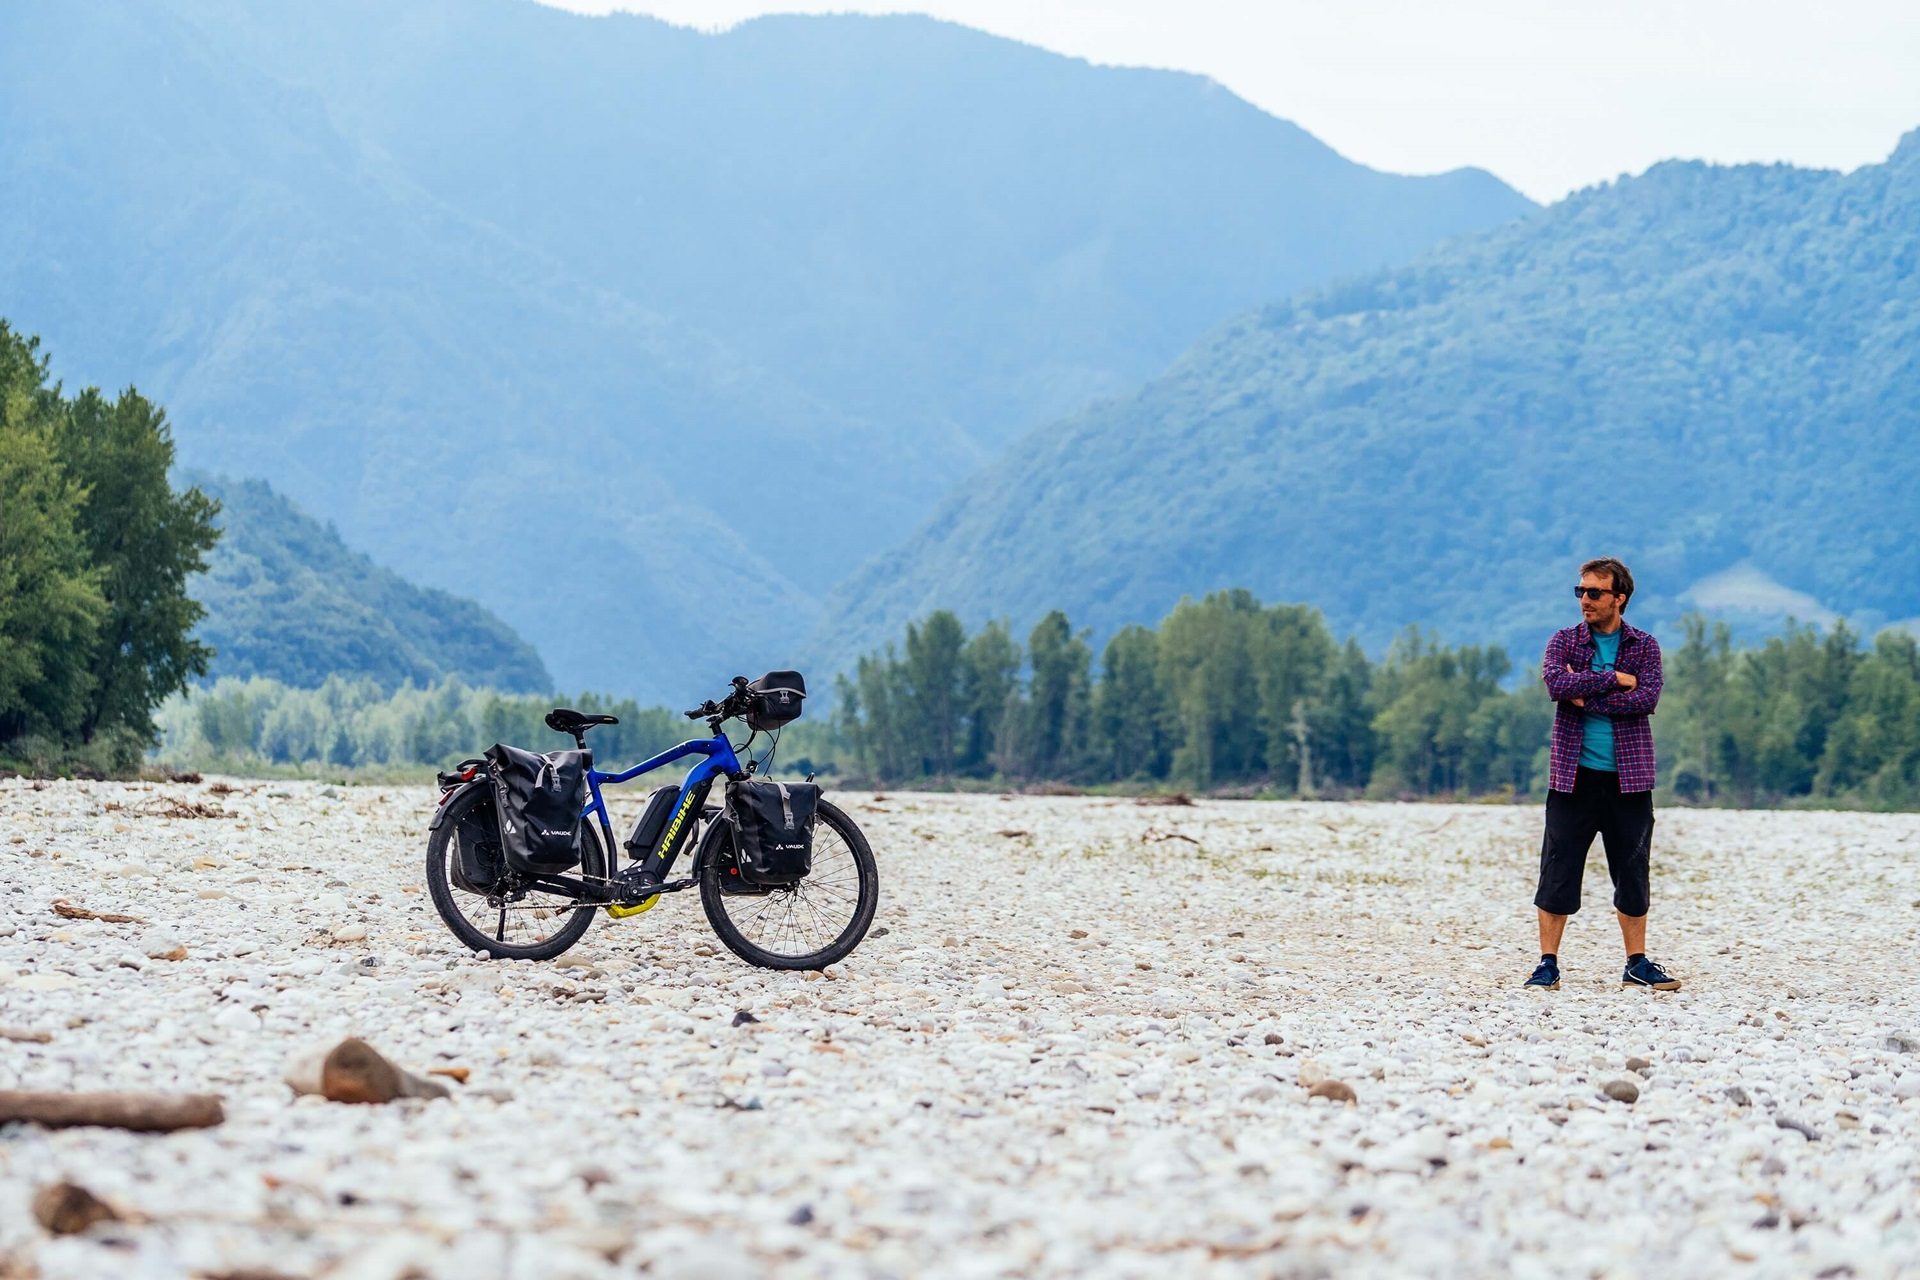 Haibike Hero Maximilian Semsch next to his bike in front of mountains